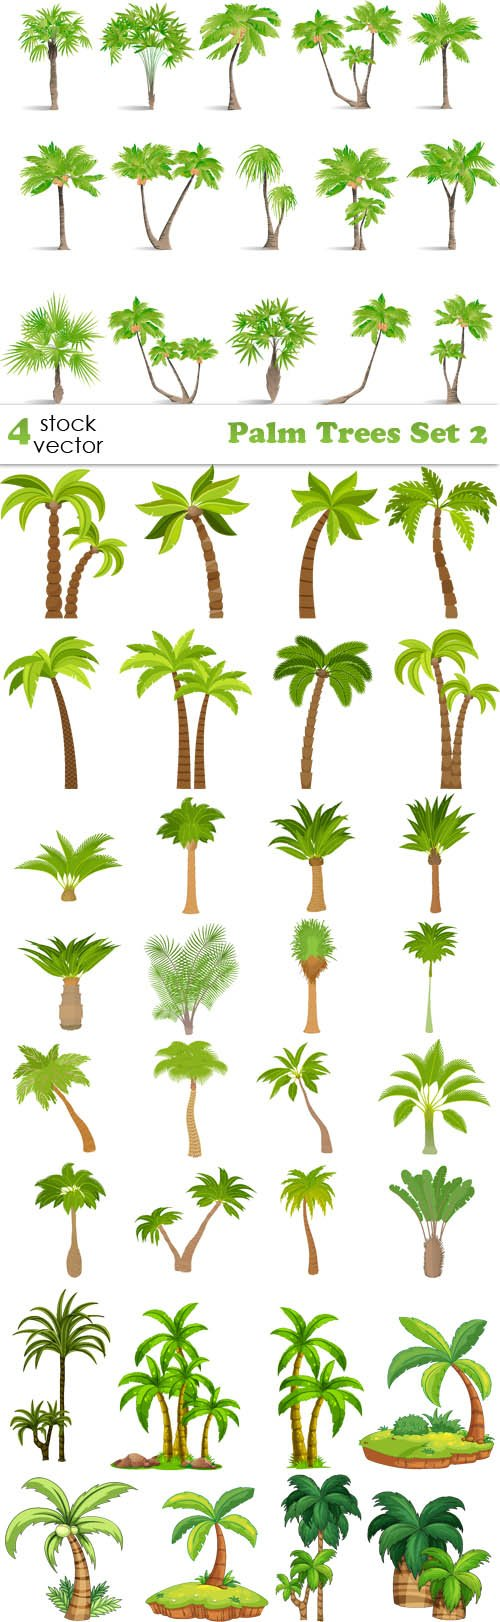 Vectors - Palm Trees Set 2